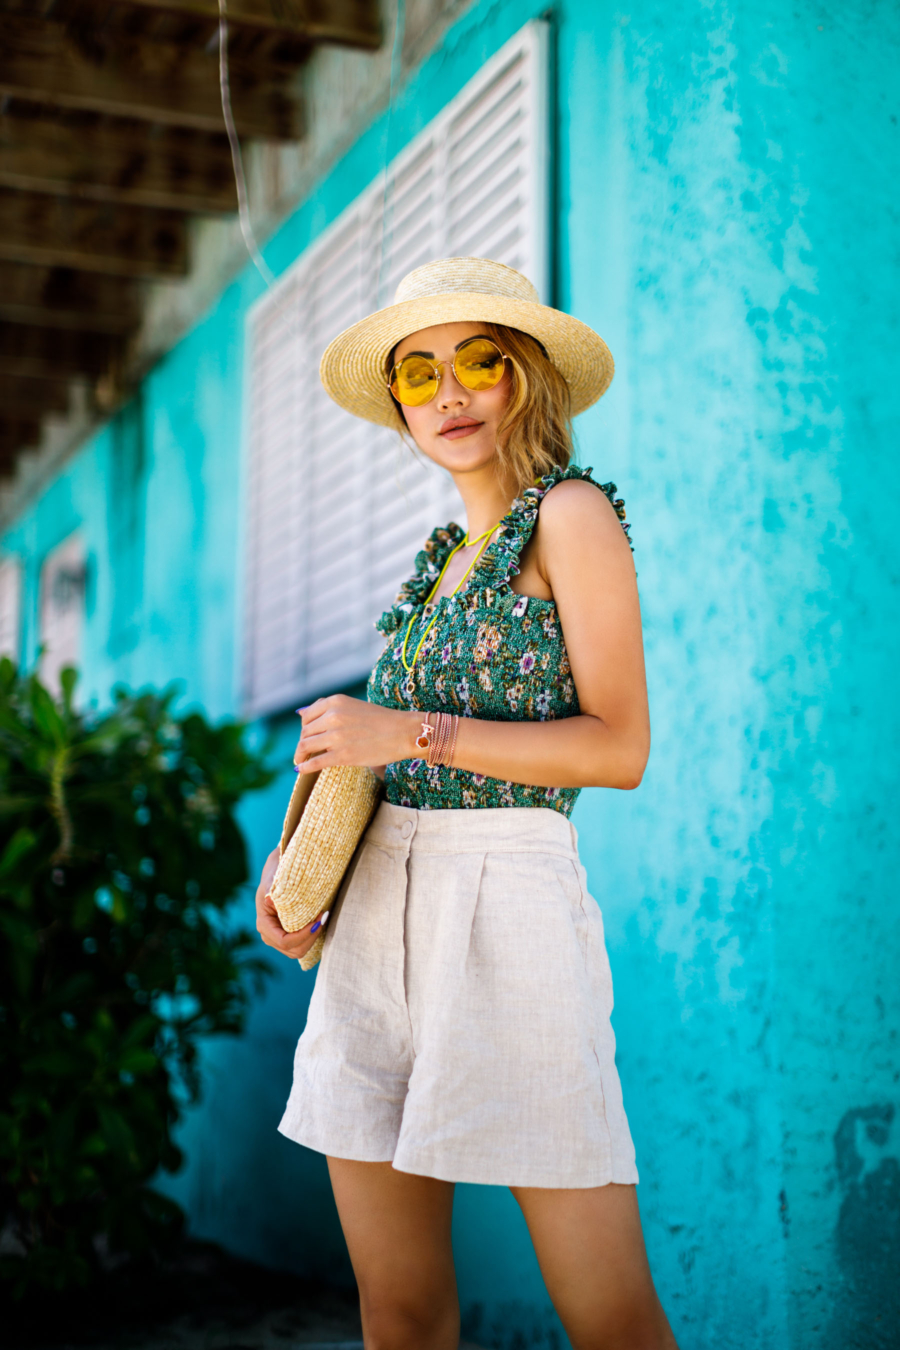 Floral Top and Linen Shorts - Free-Spirited Accessories to Compliment Your Summer Style // NotJessFashion.com